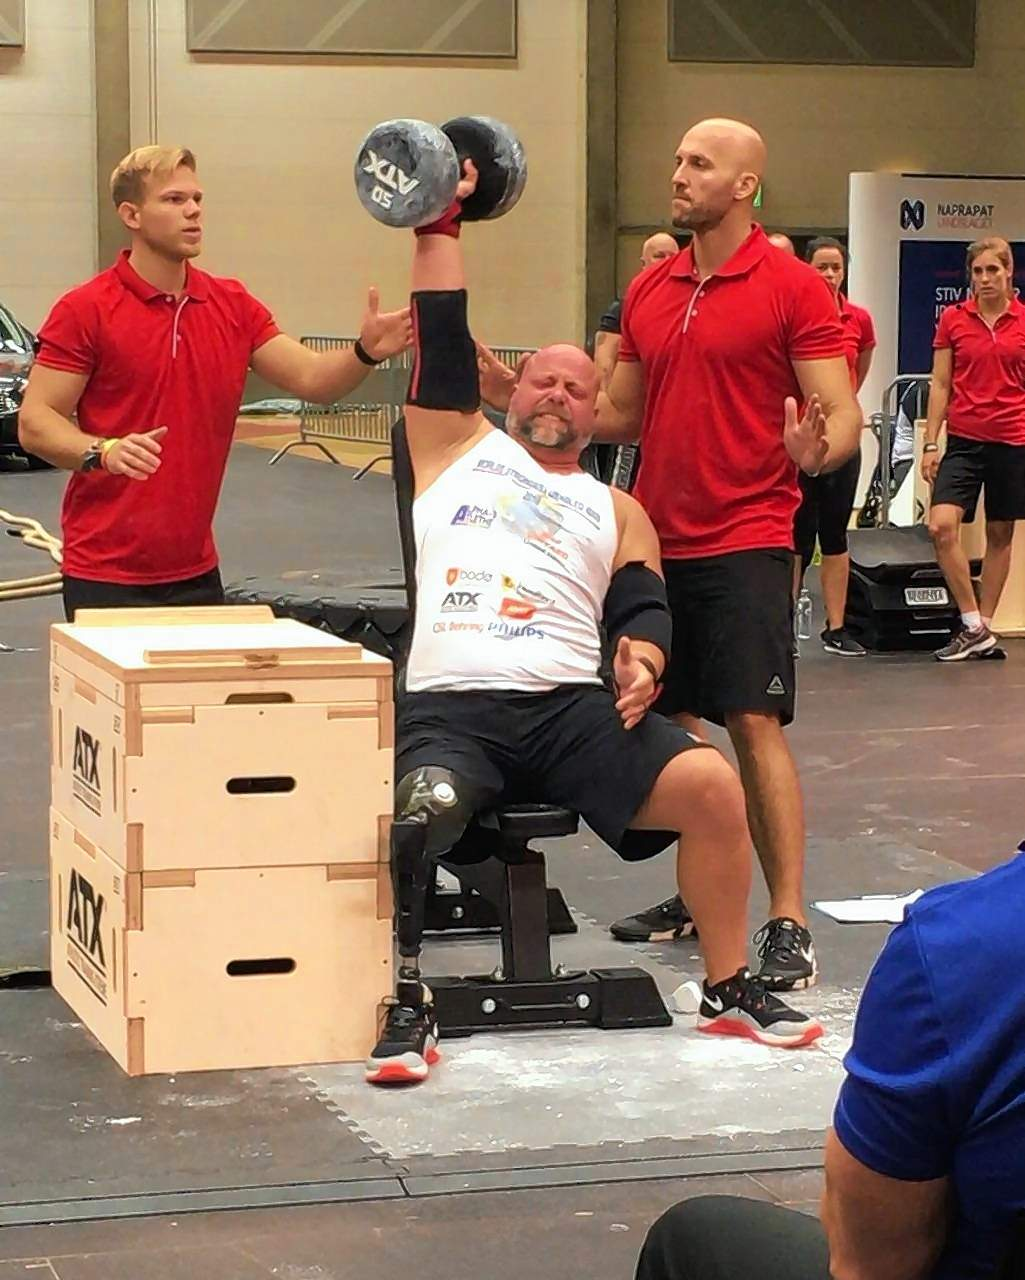 Brad Vinyard competes in one-arm dumbbell press.